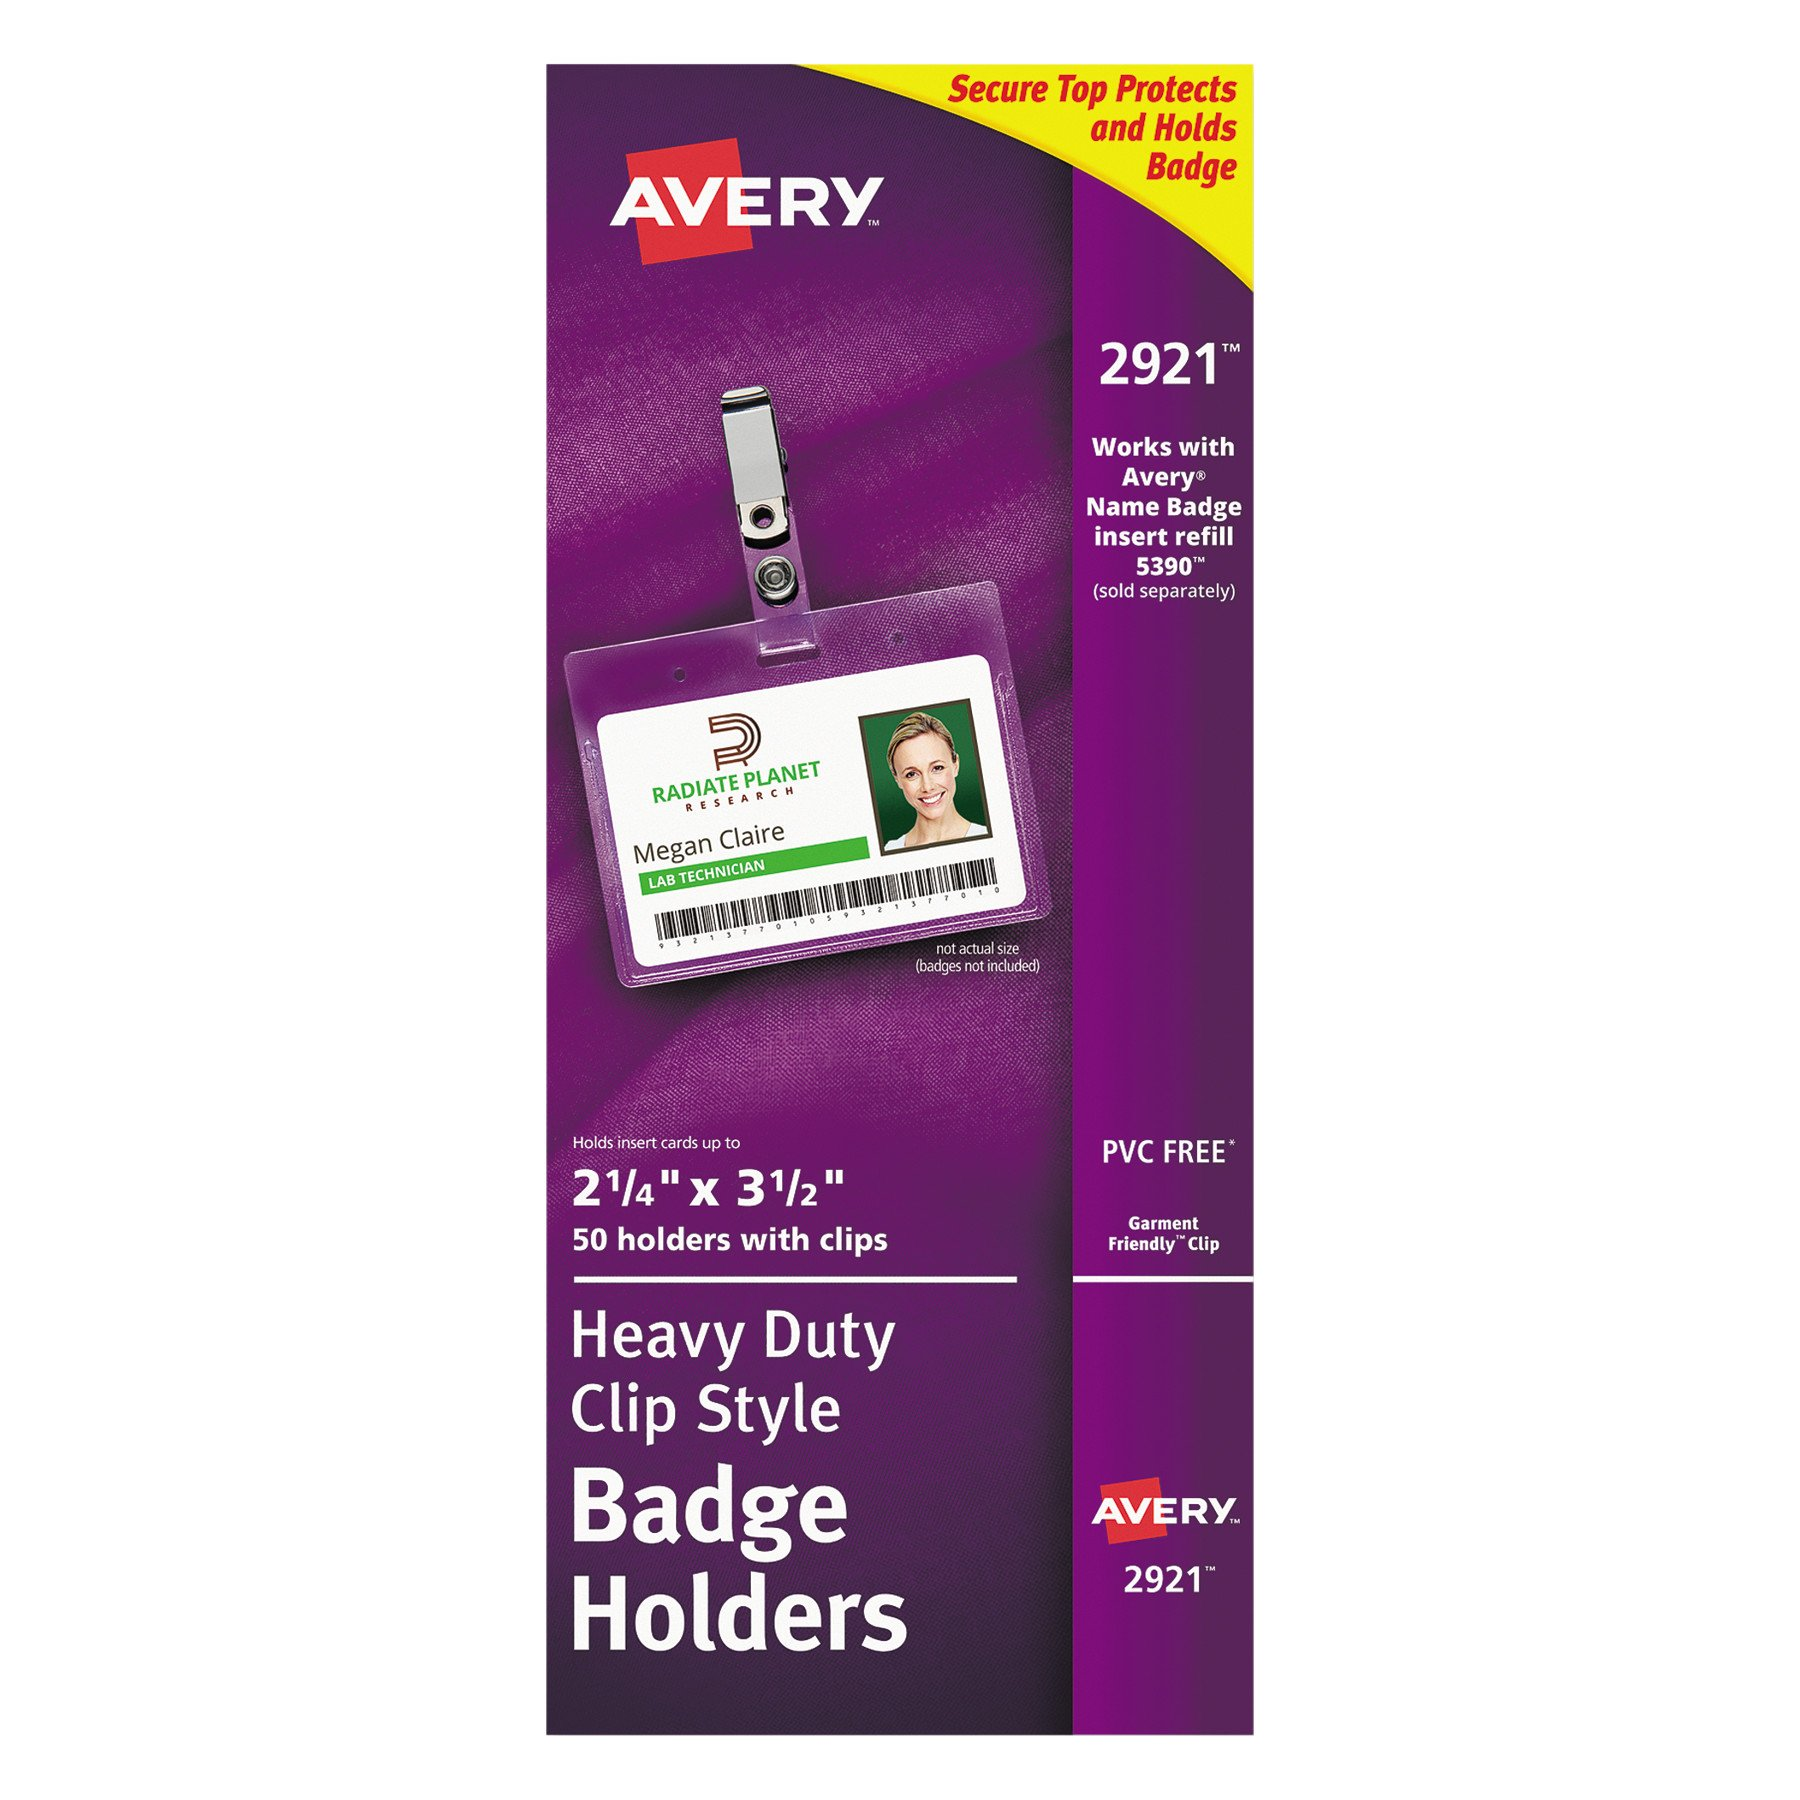 Avery AVE2921 Clear Heavy-Duty Clip Style Landscape Badge Holders, 2-1/4'' x 3-1/2'', Box of 50 (2921)